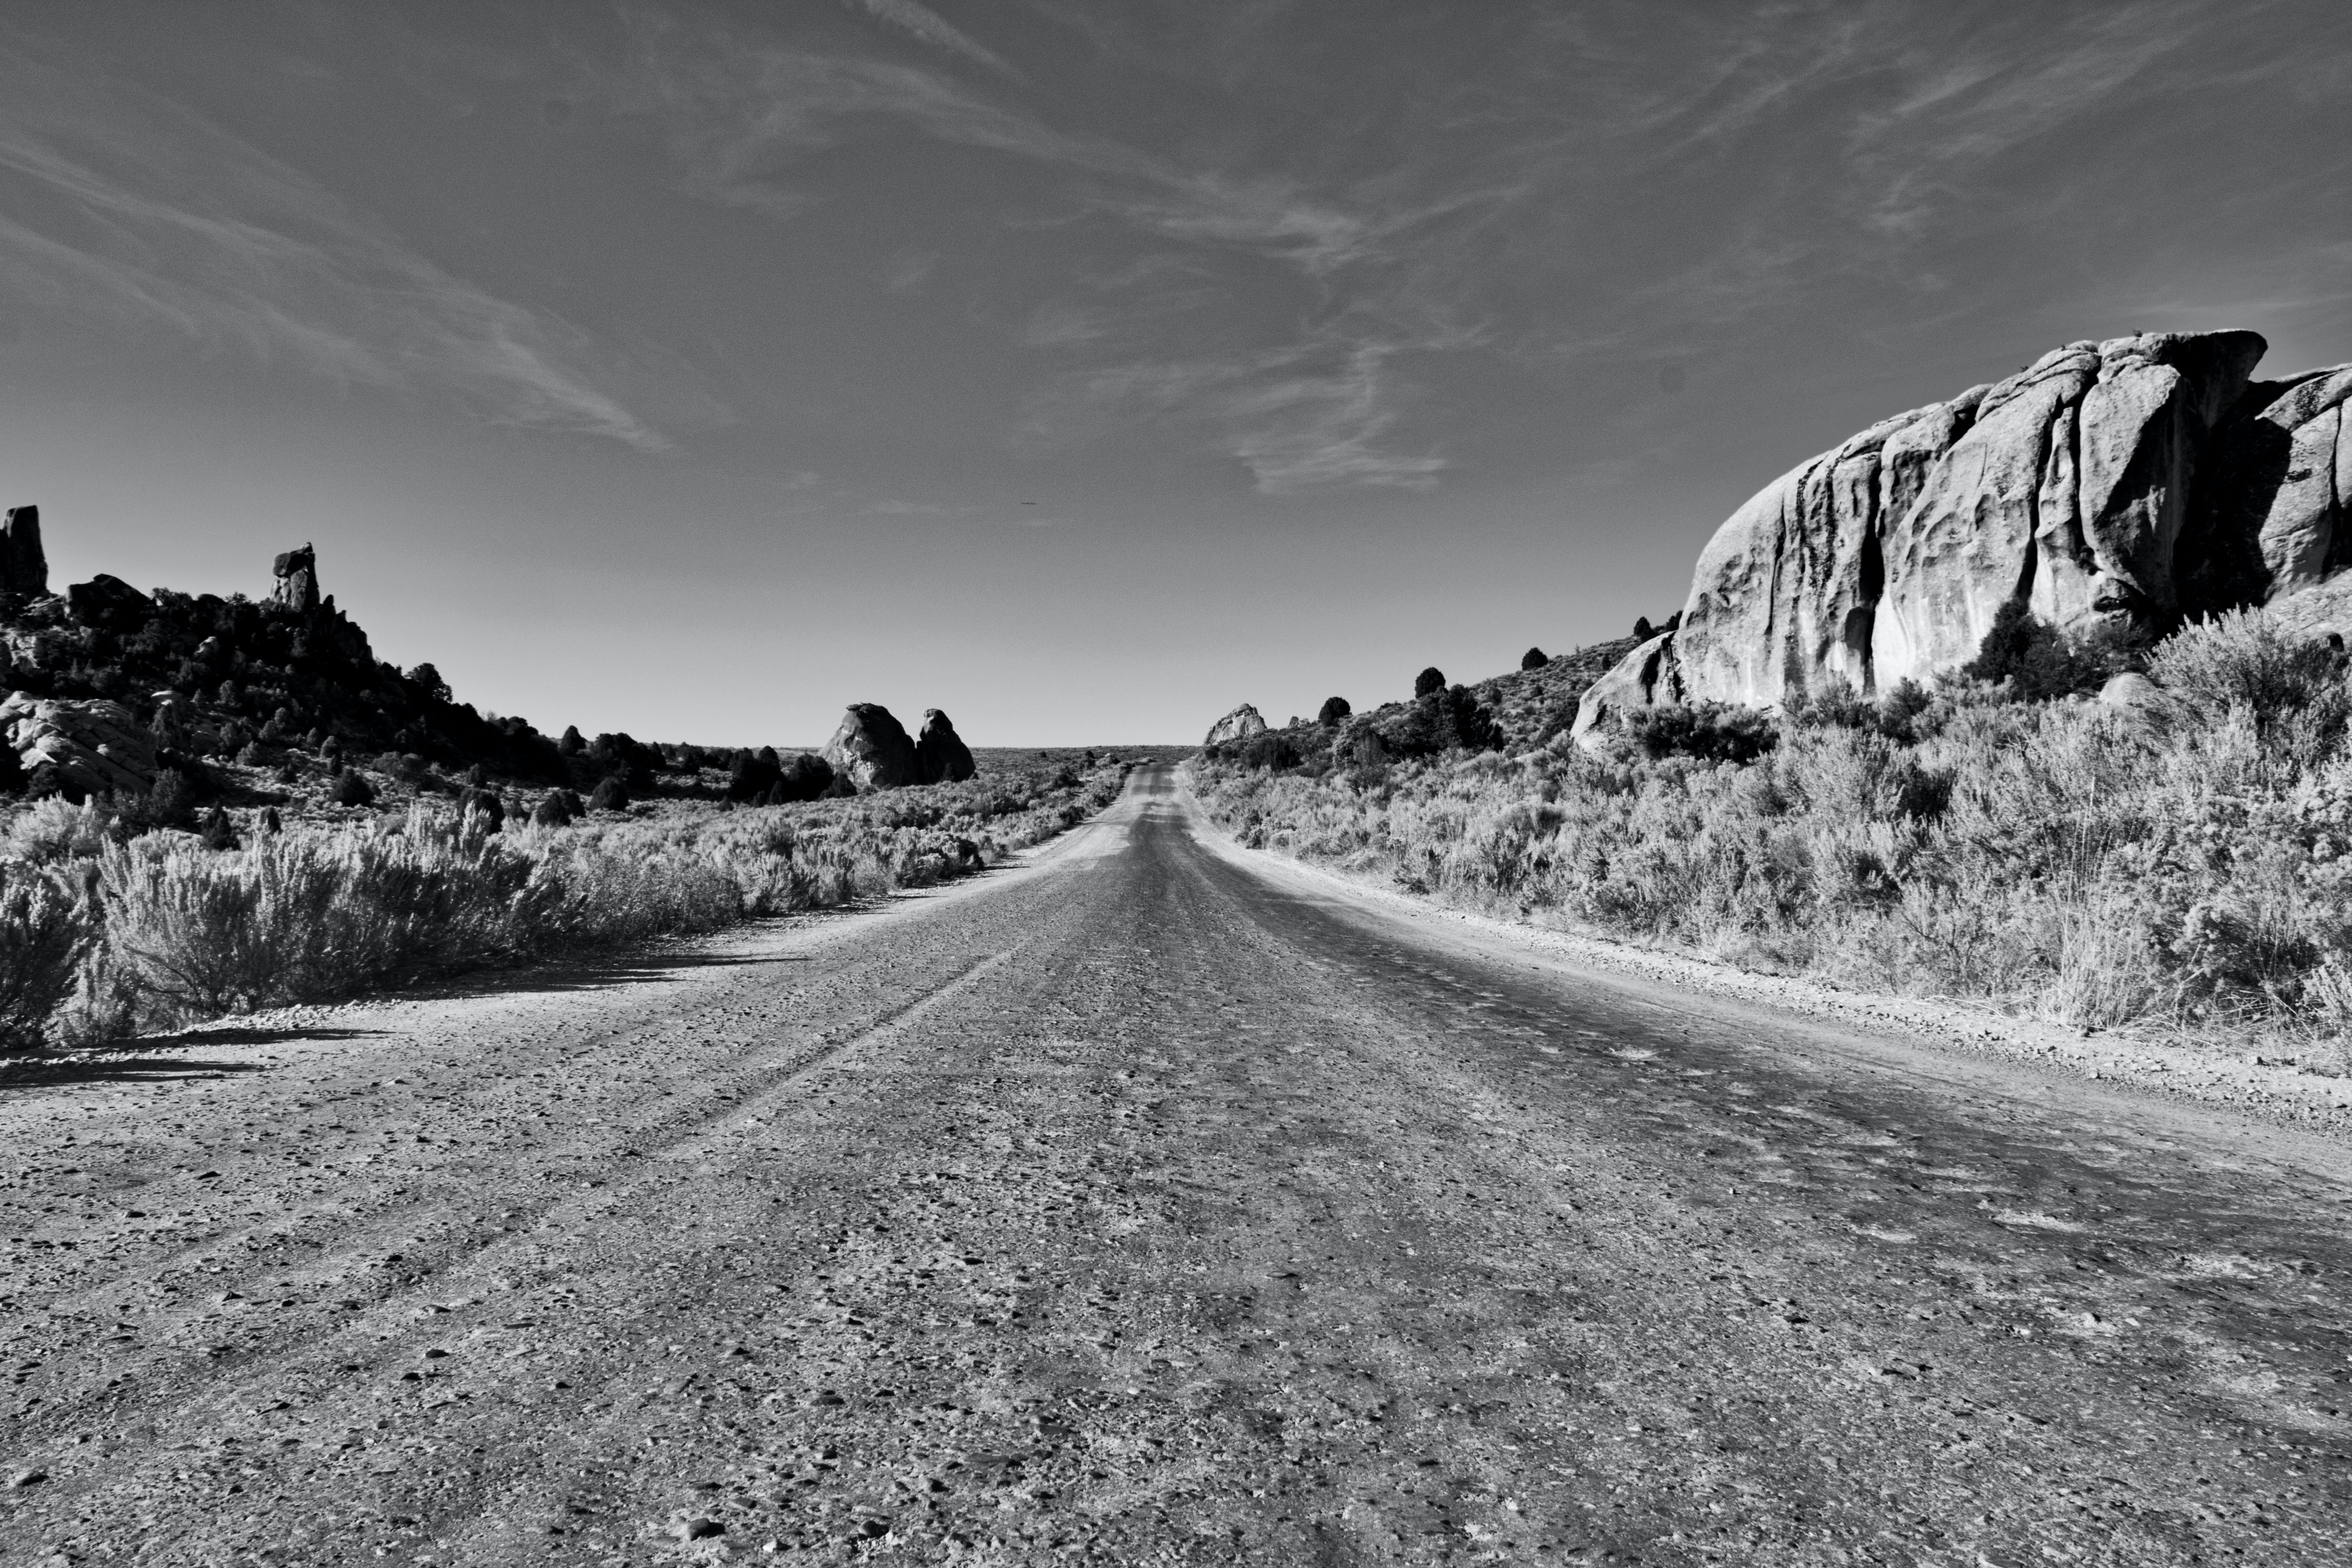 Grayscale Photography of Empty Soil Road Under Cloudy Skies